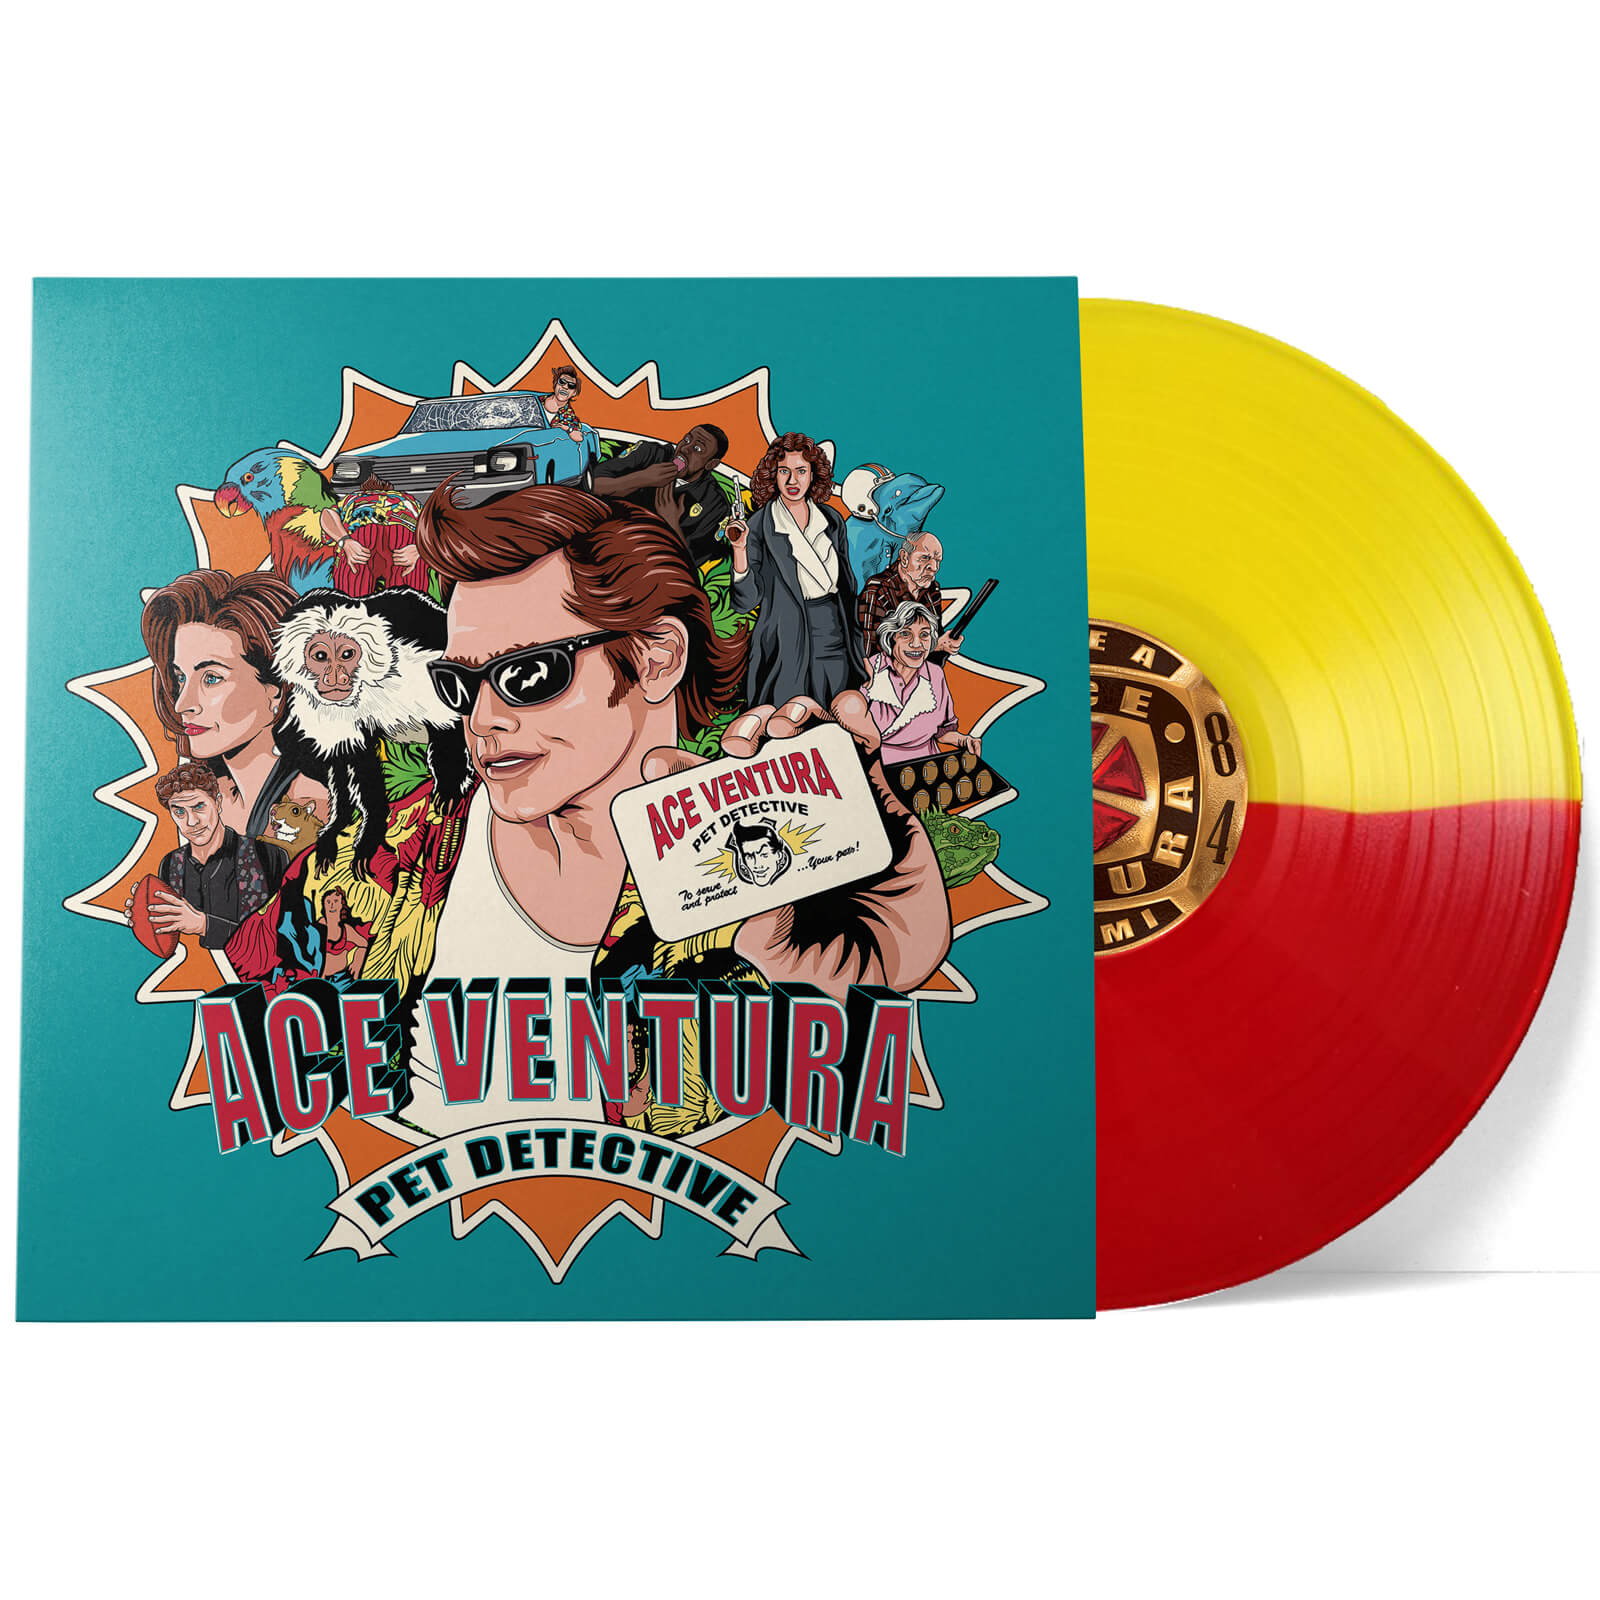 Ace Ventura - Original Soundtrack